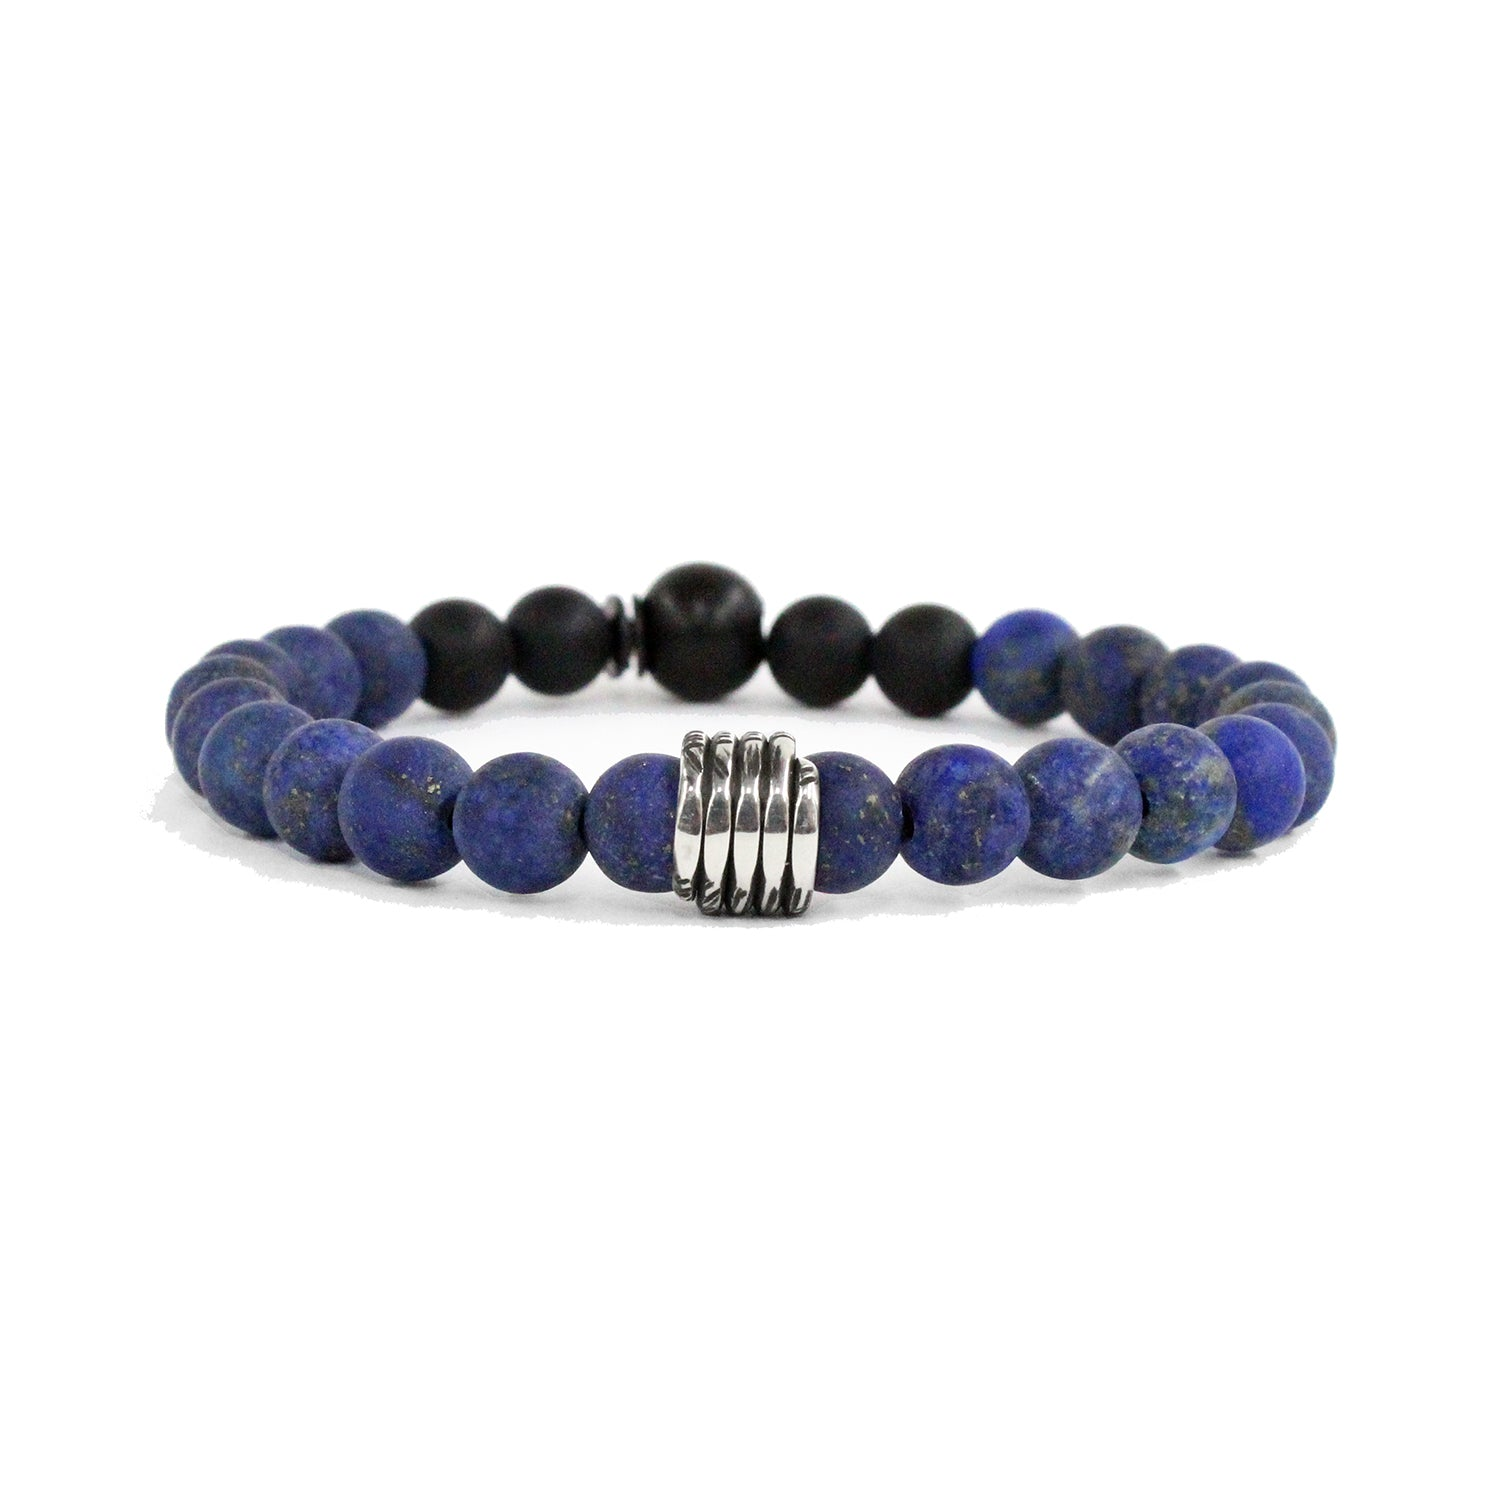 KENTON MICHAEL BLUE LAPIS WITH STERLING SILVER COIL BRACELET